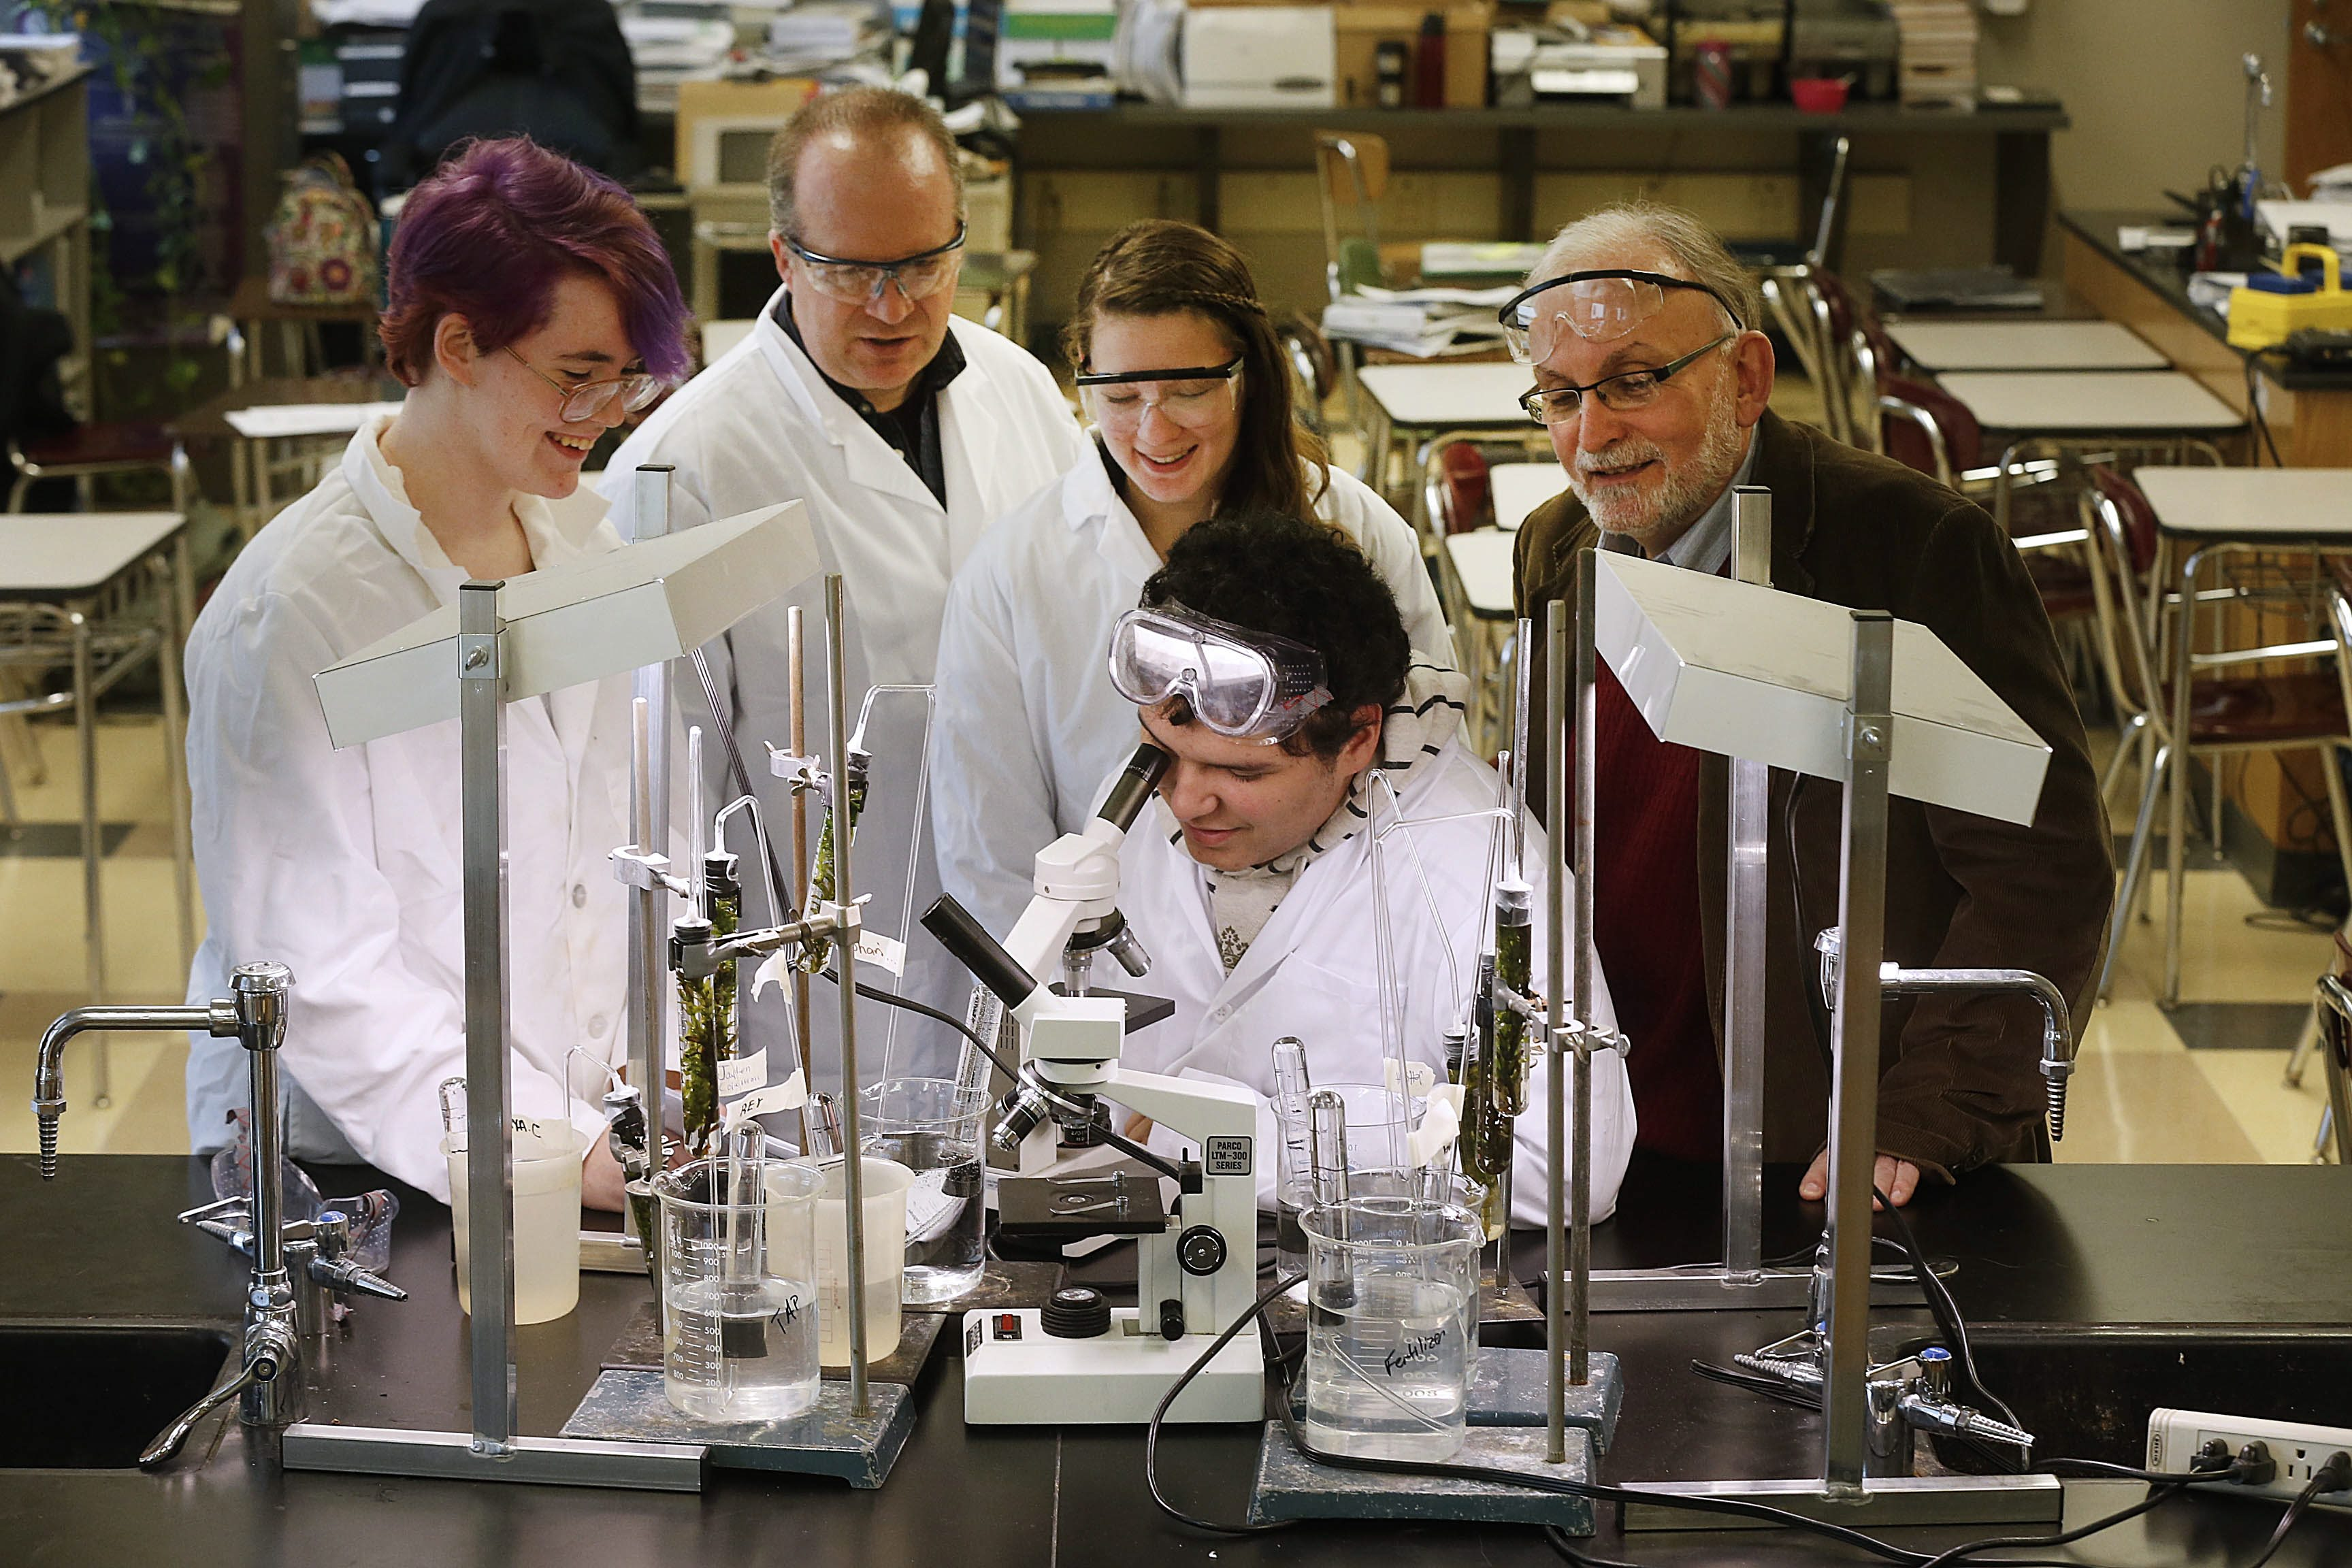 UB professor Joseph Gardella, right, spearheaded the city schools' STEM effort. Here he watches South Park High students conduct an experiment in photosynthesis. At the microscope is junior Anthony Colon. With him are, from left, senior Emily Grant, chemistry teacher Daniel Hildreth and junior Madison Parker. (Robert Kirkham/Buffalo News file photo)